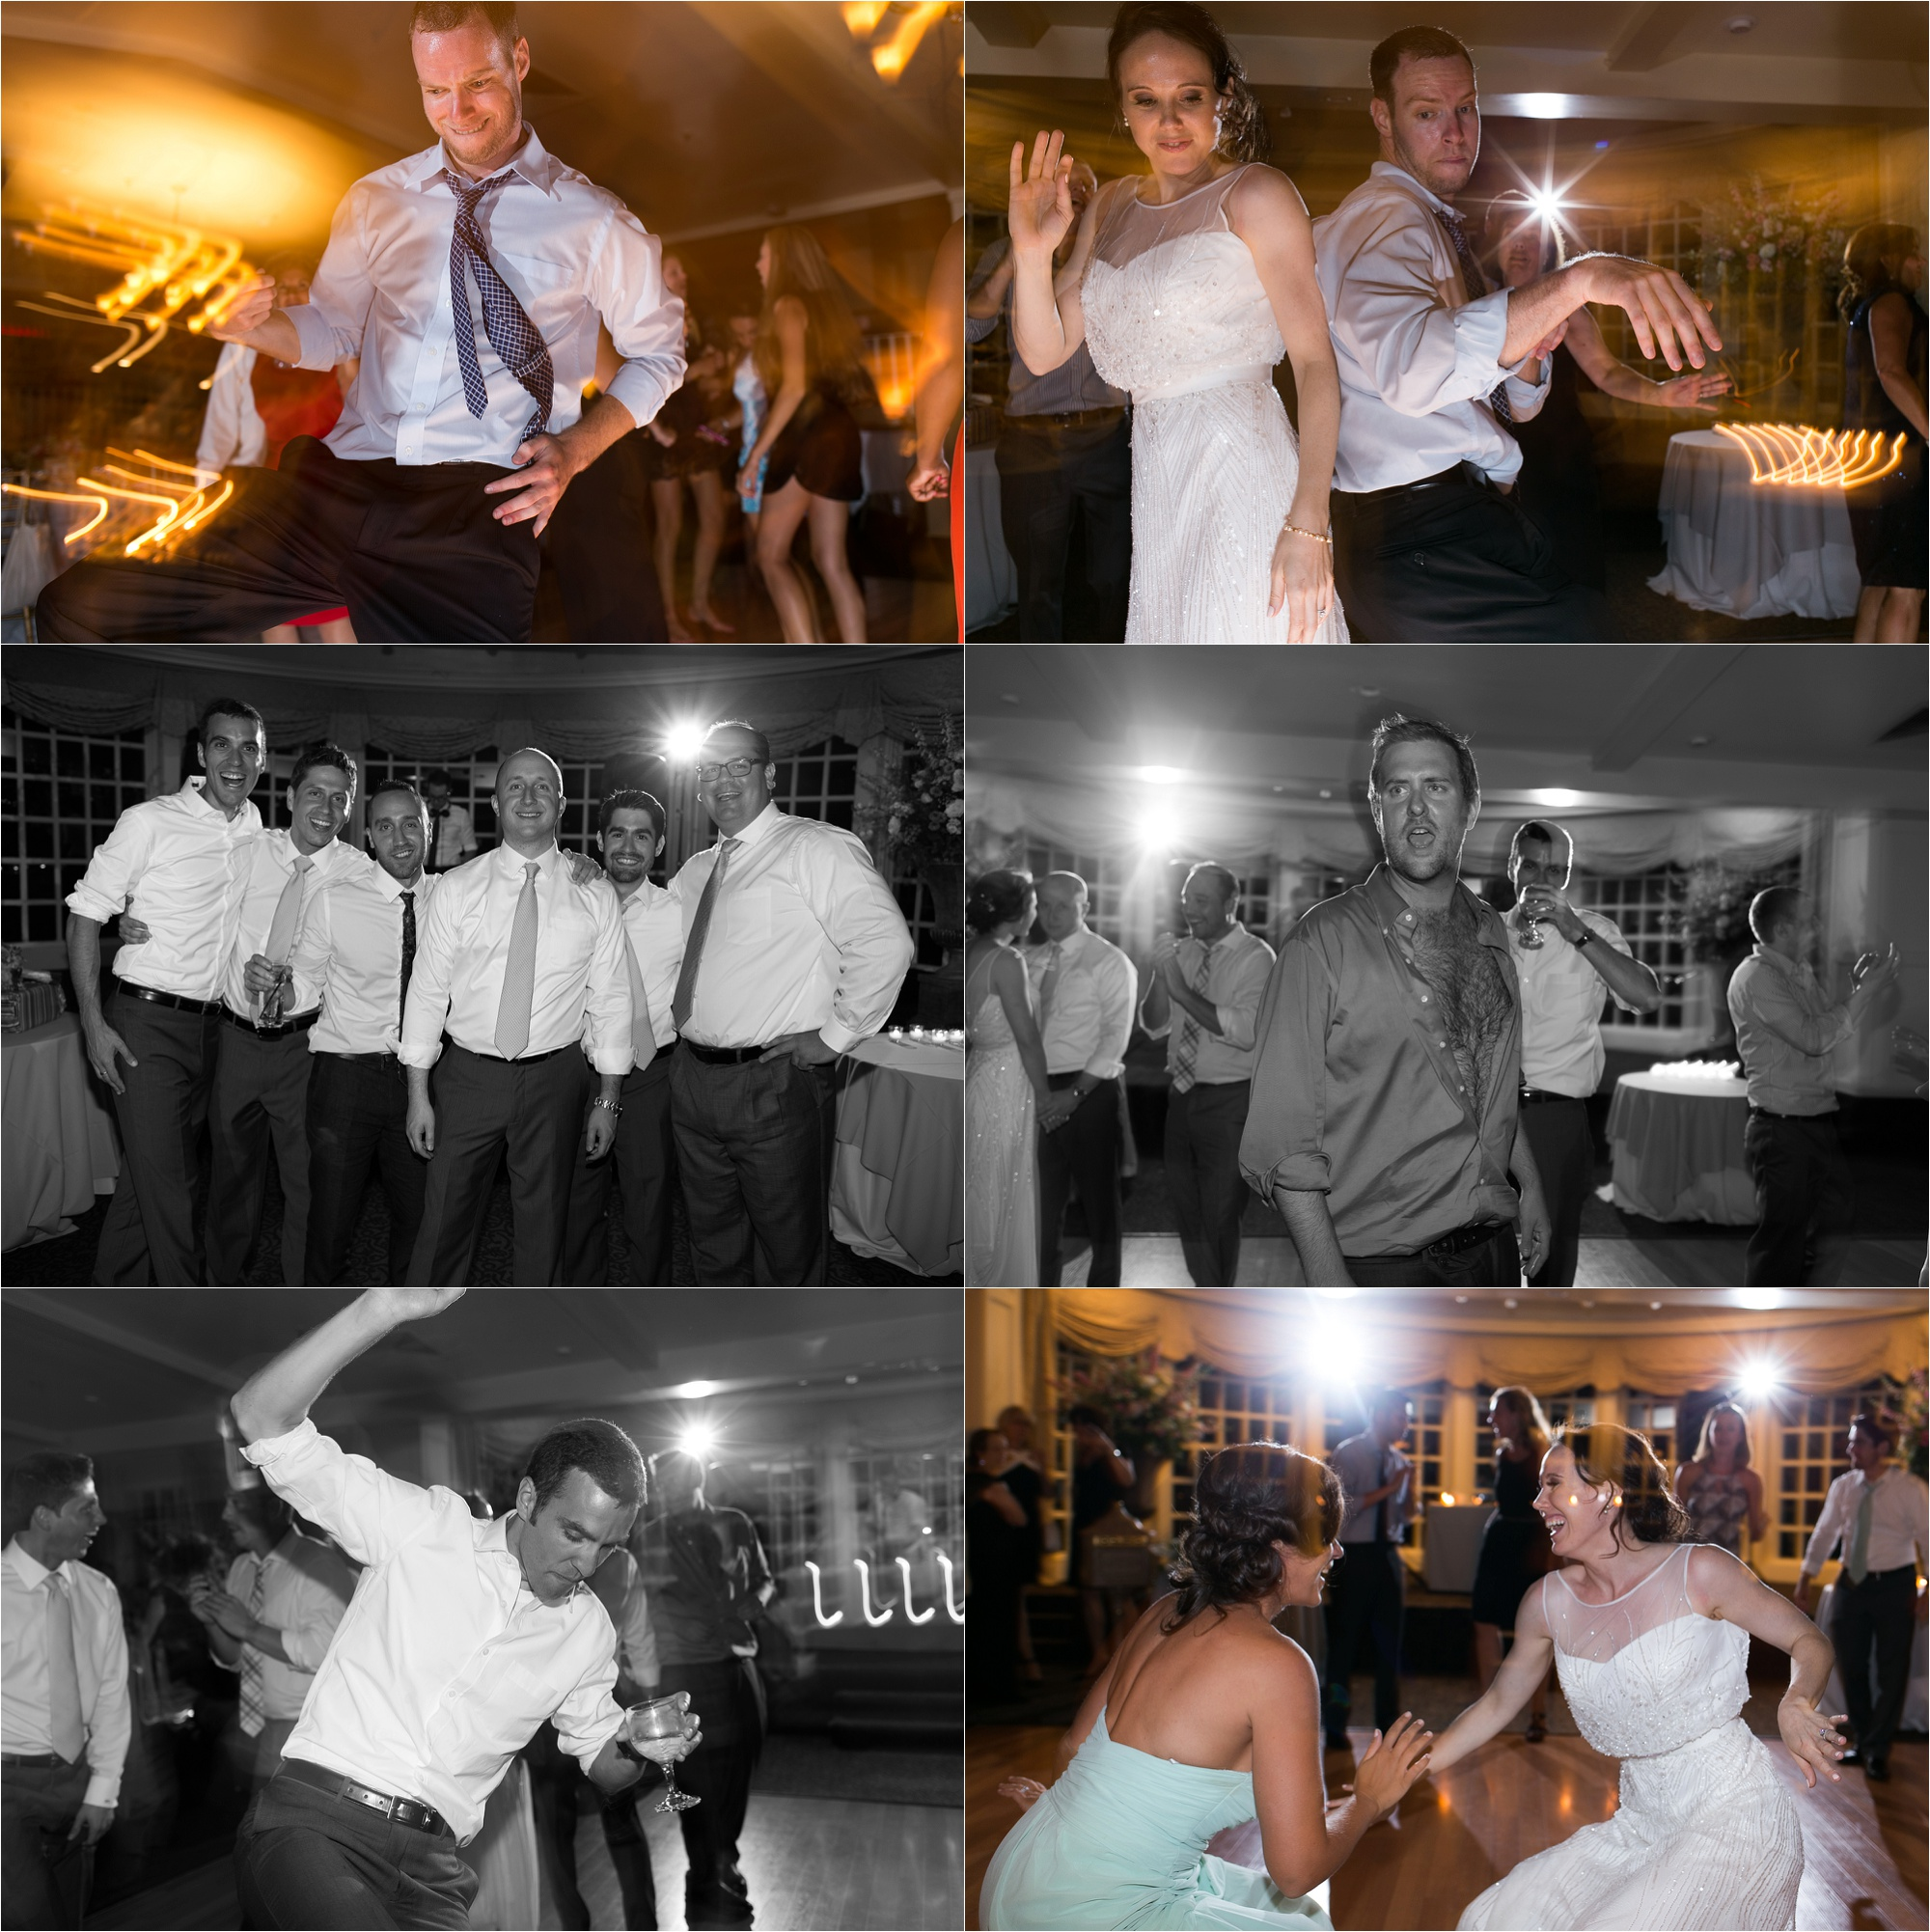 The bride, groom, and their guests dance the night away at their wedding reception